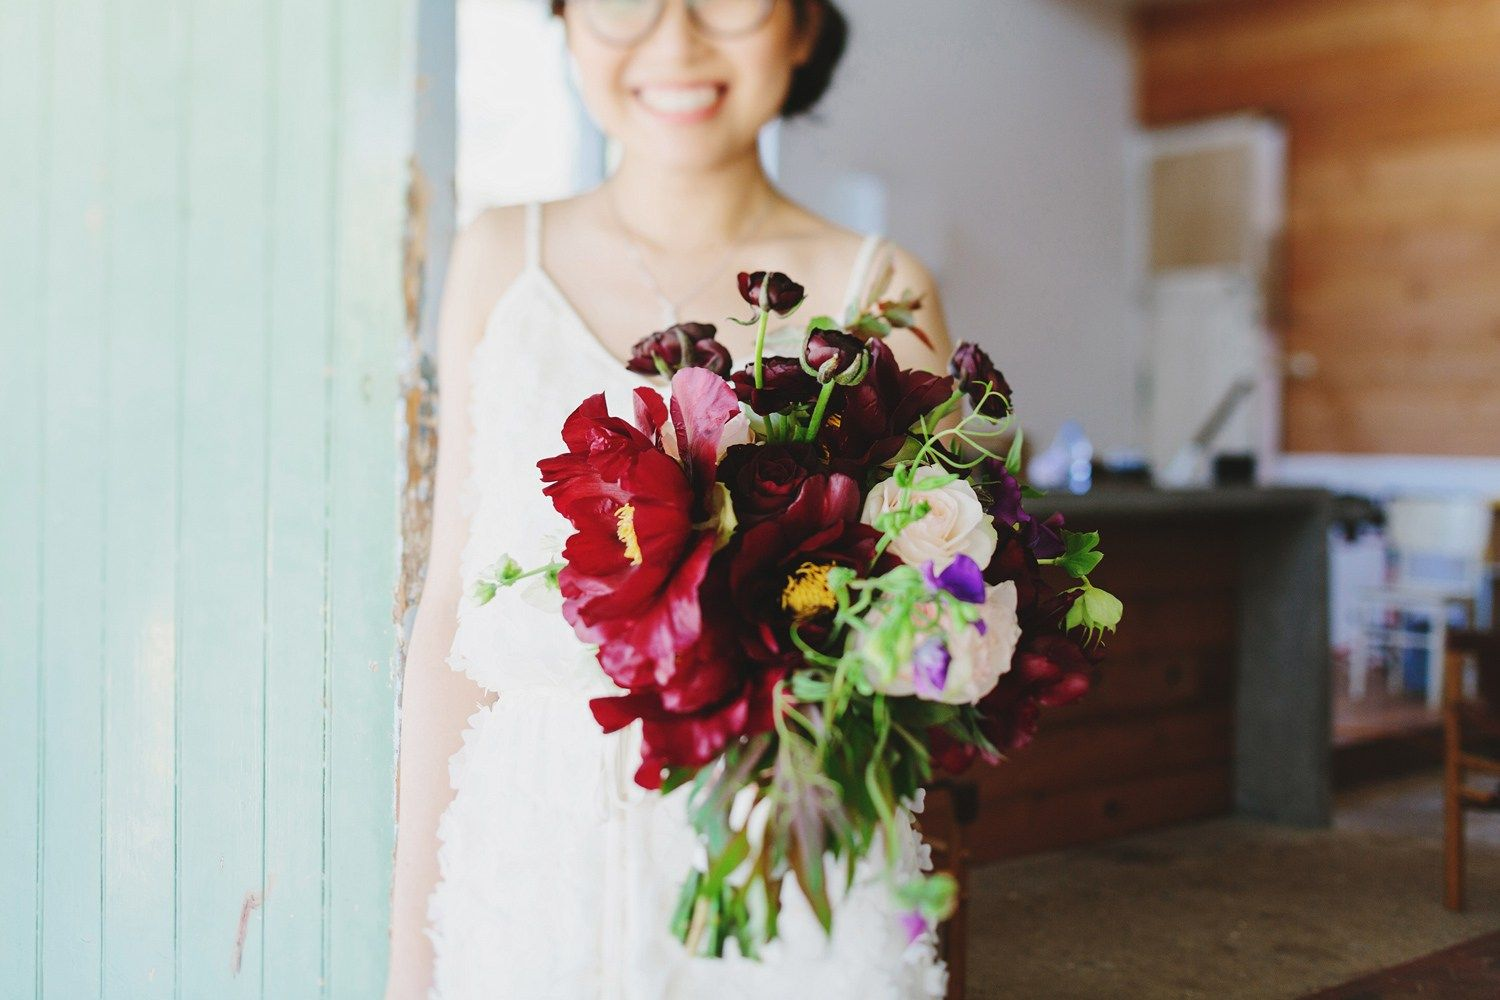 Burgundy wedding bouquet included peonies, garden roses, deep plum lilacs, sweet pea and jasmine vine | fabmood.com #weddingbouquet #rusticwedding #factorywedding